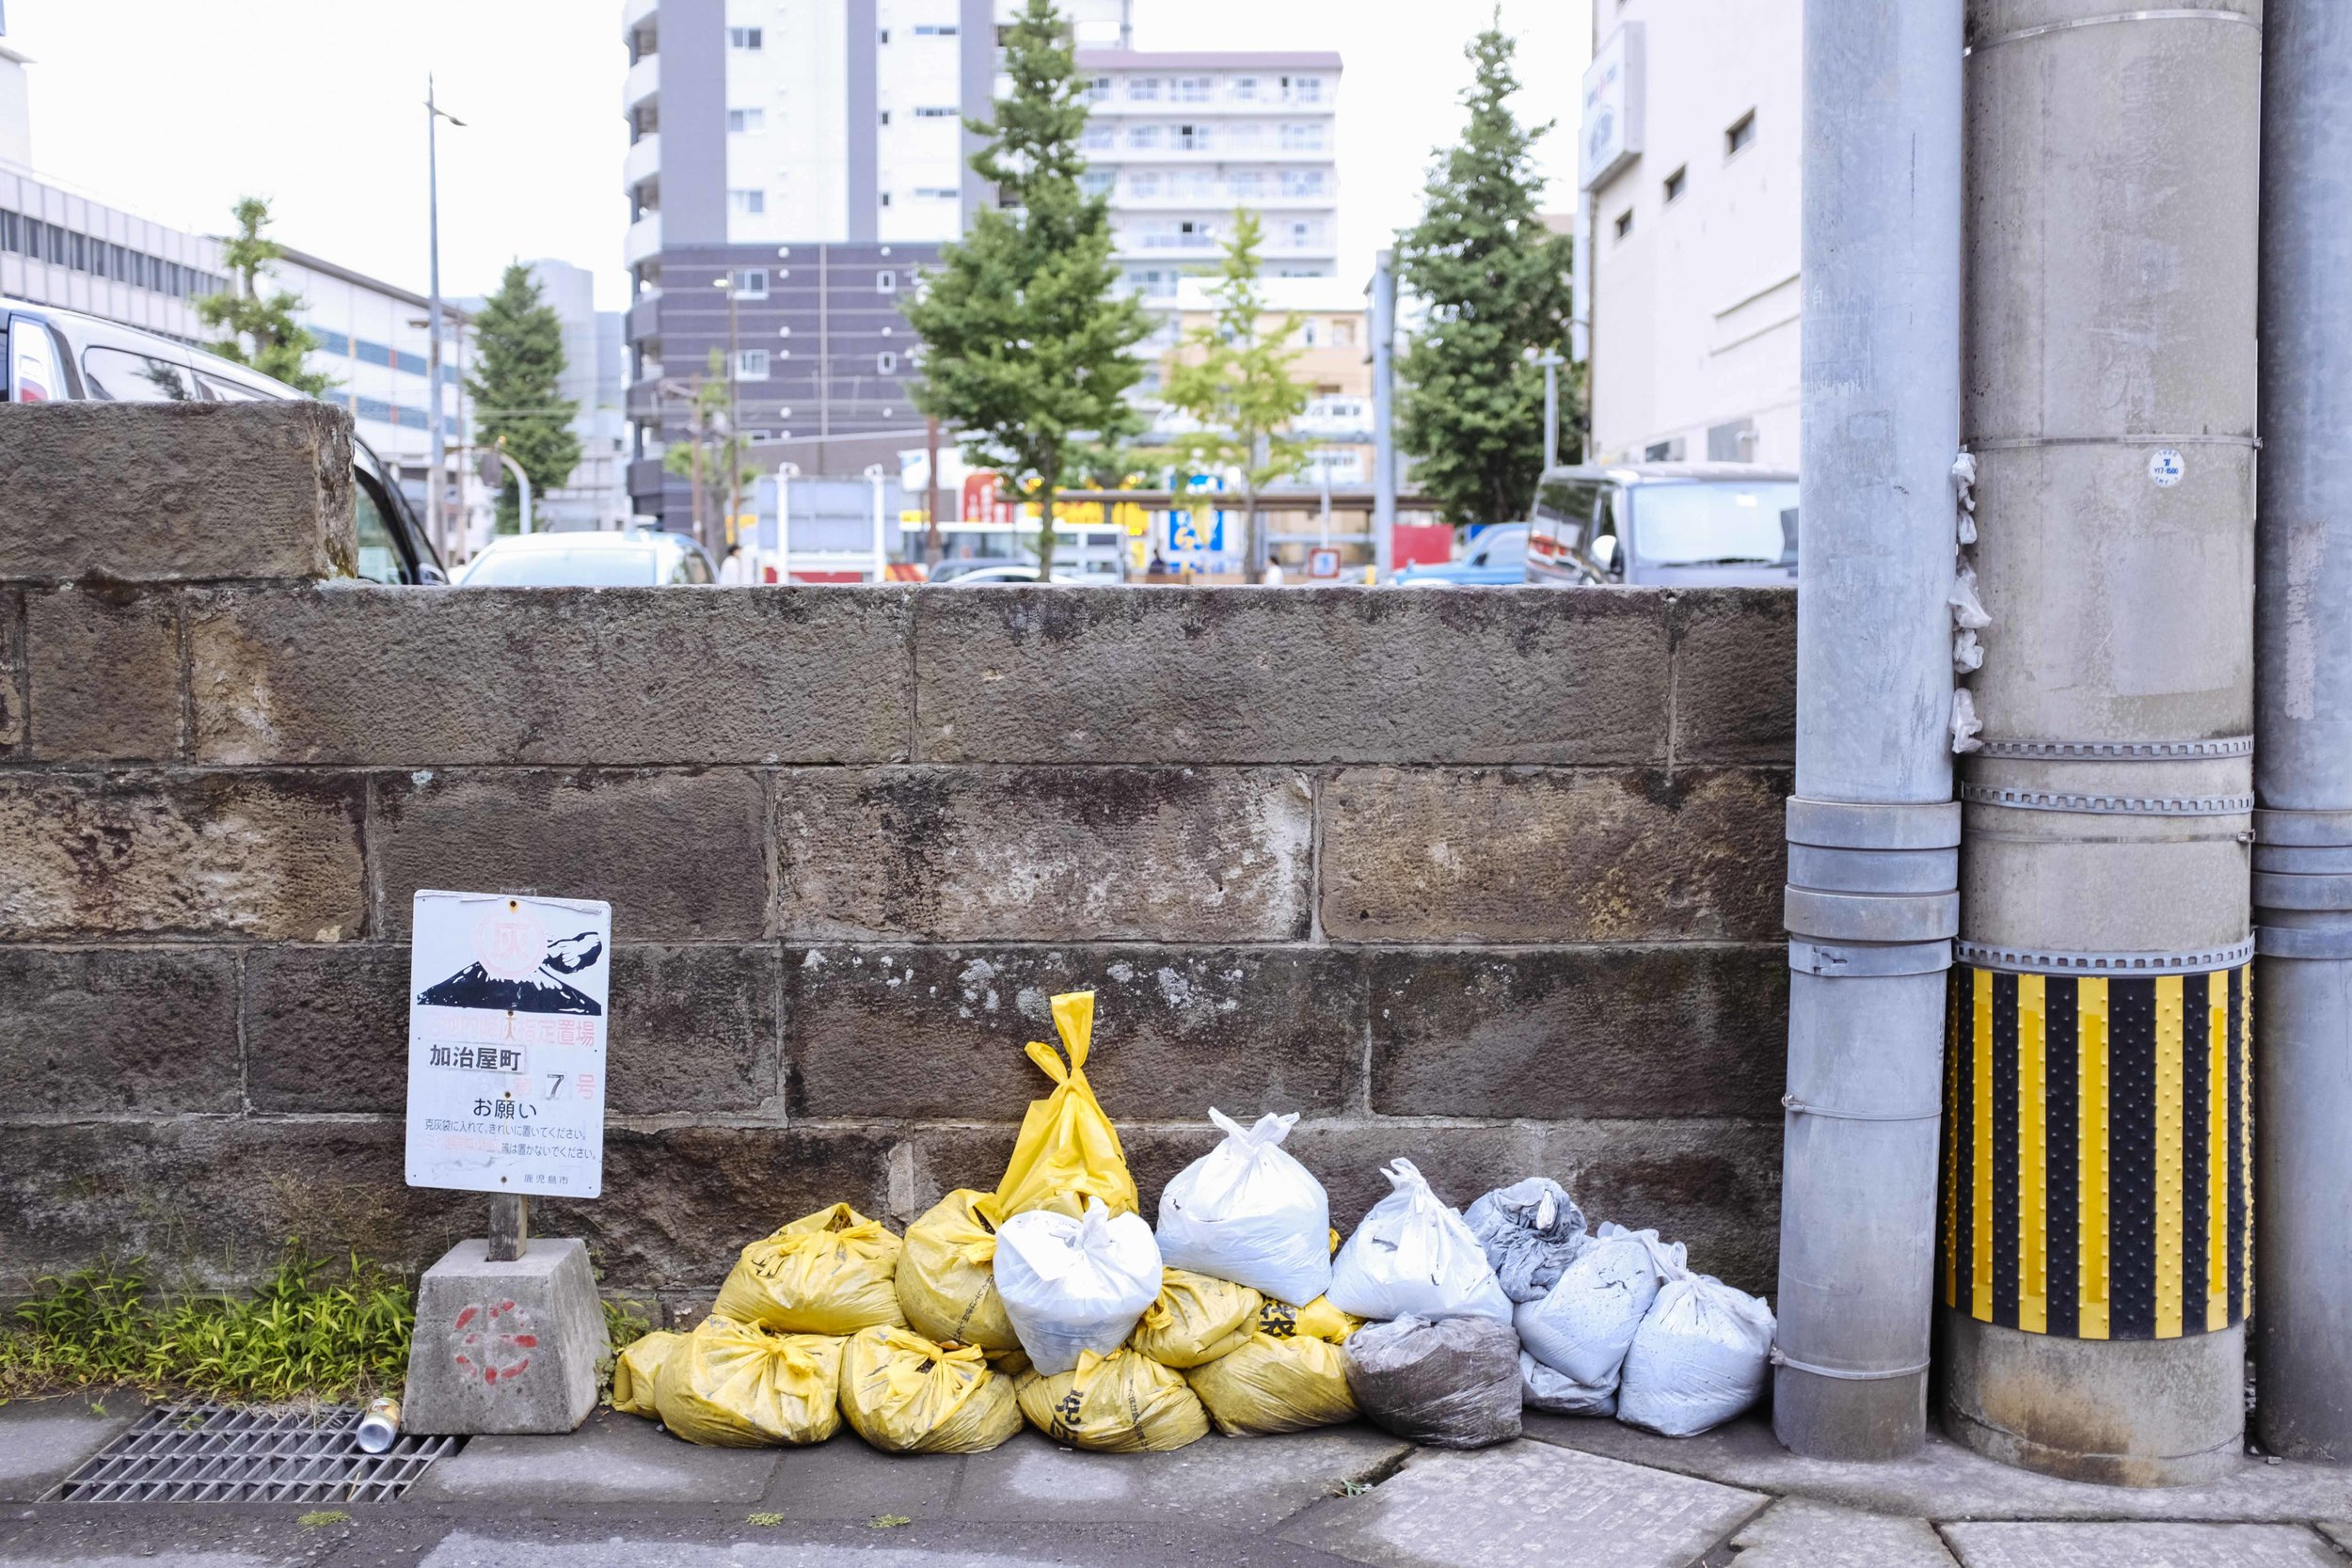 Bags of volcanic ash can be found everywhere in Kagoshima!